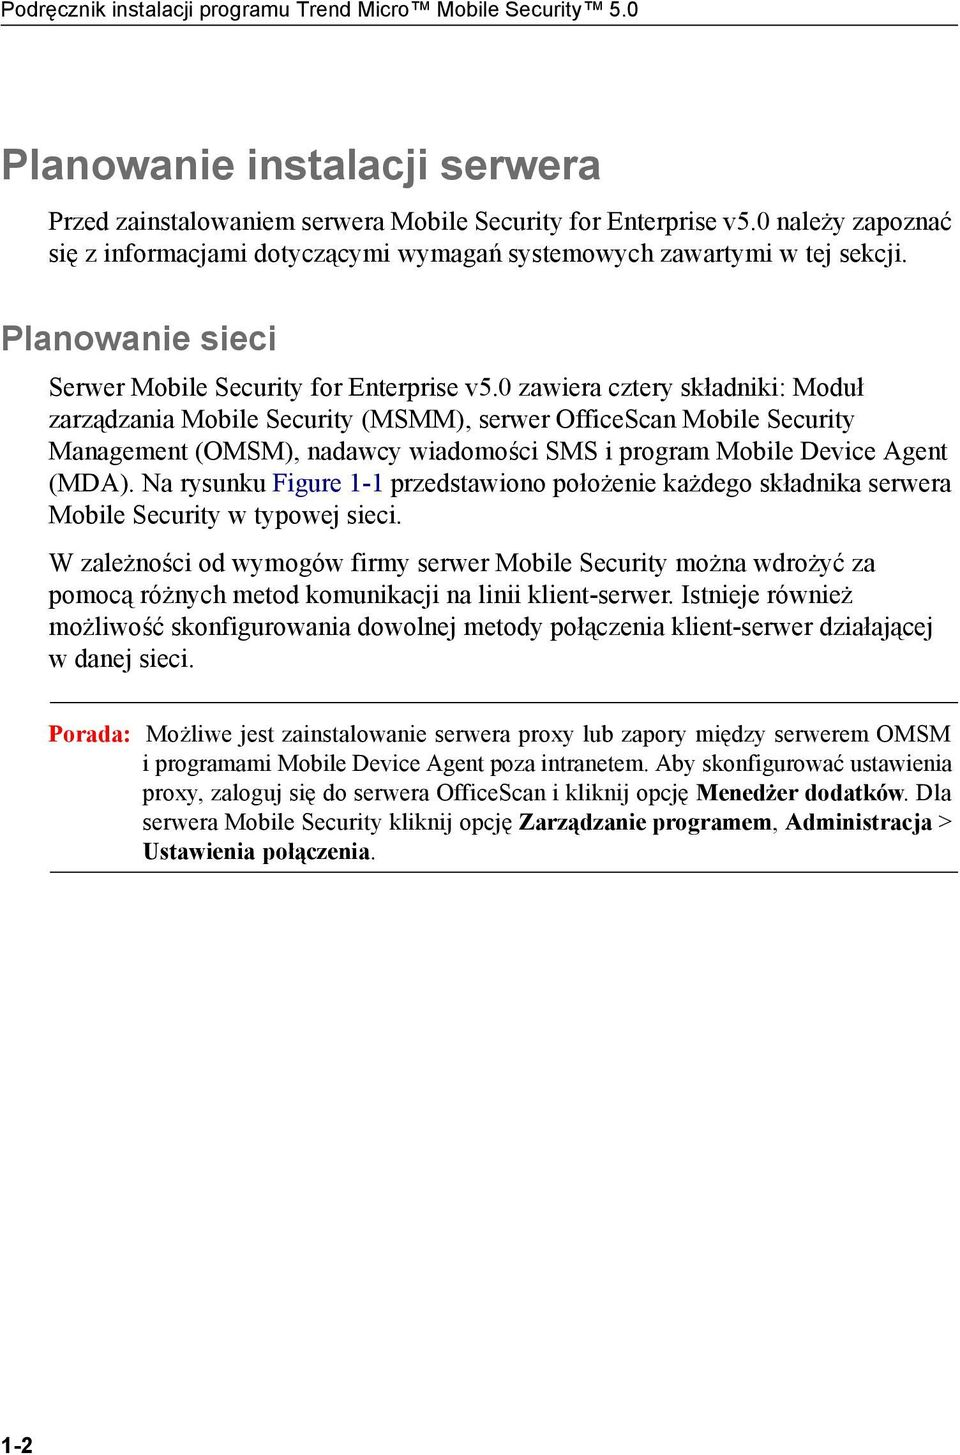 0 zawiera cztery składniki: Moduł zarządzania Mobile Security (MSMM), serwer OfficeScan Mobile Security Management (OMSM), nadawcy wiadomości SMS i program Mobile Device Agent (MDA).